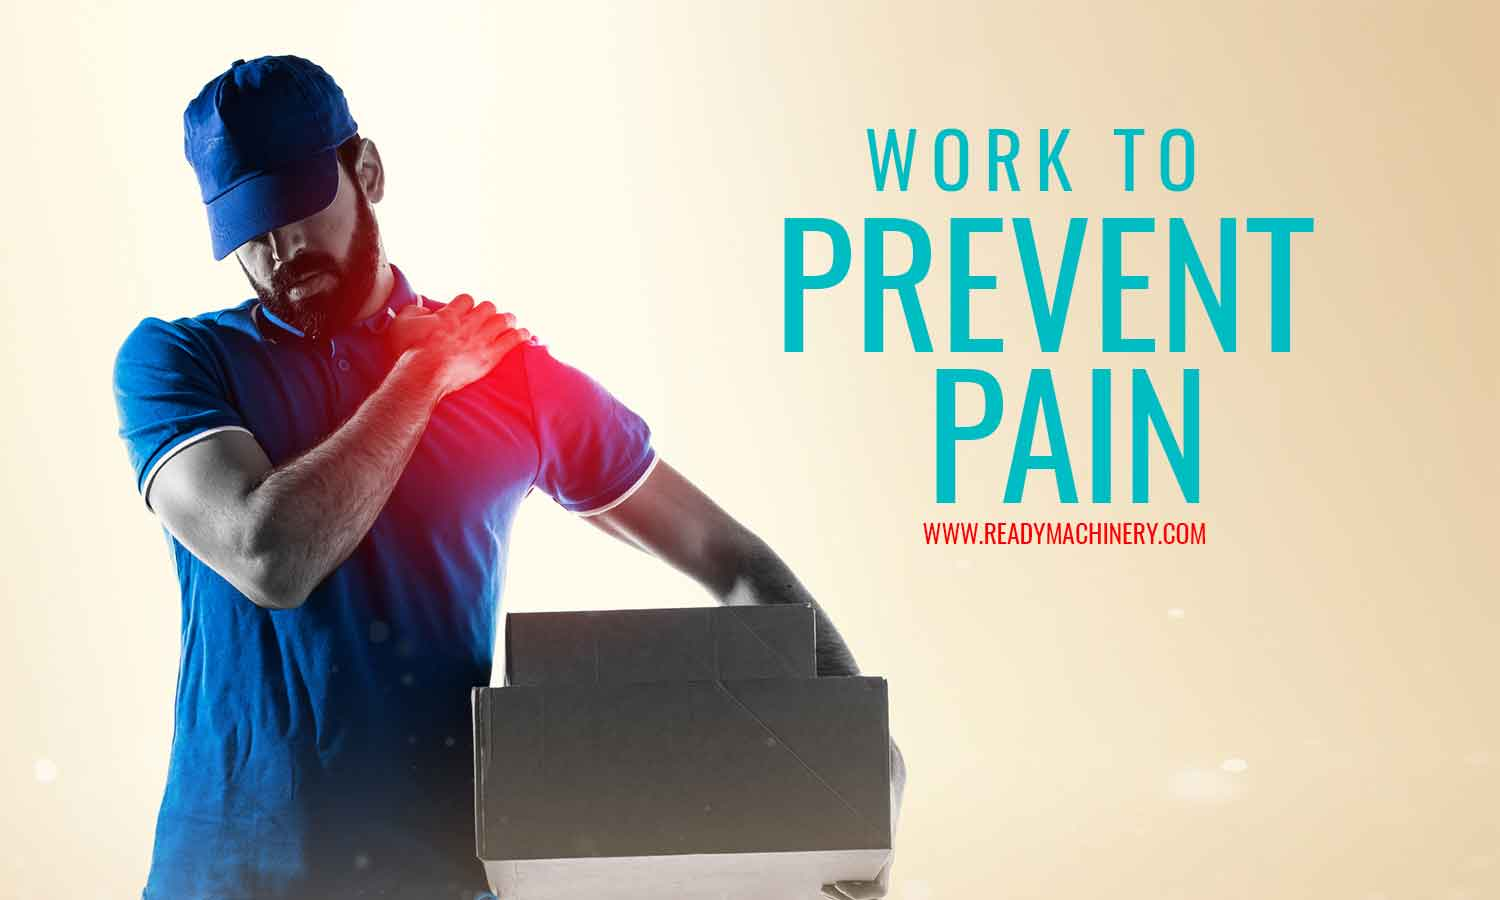 Work to Prevent Pain